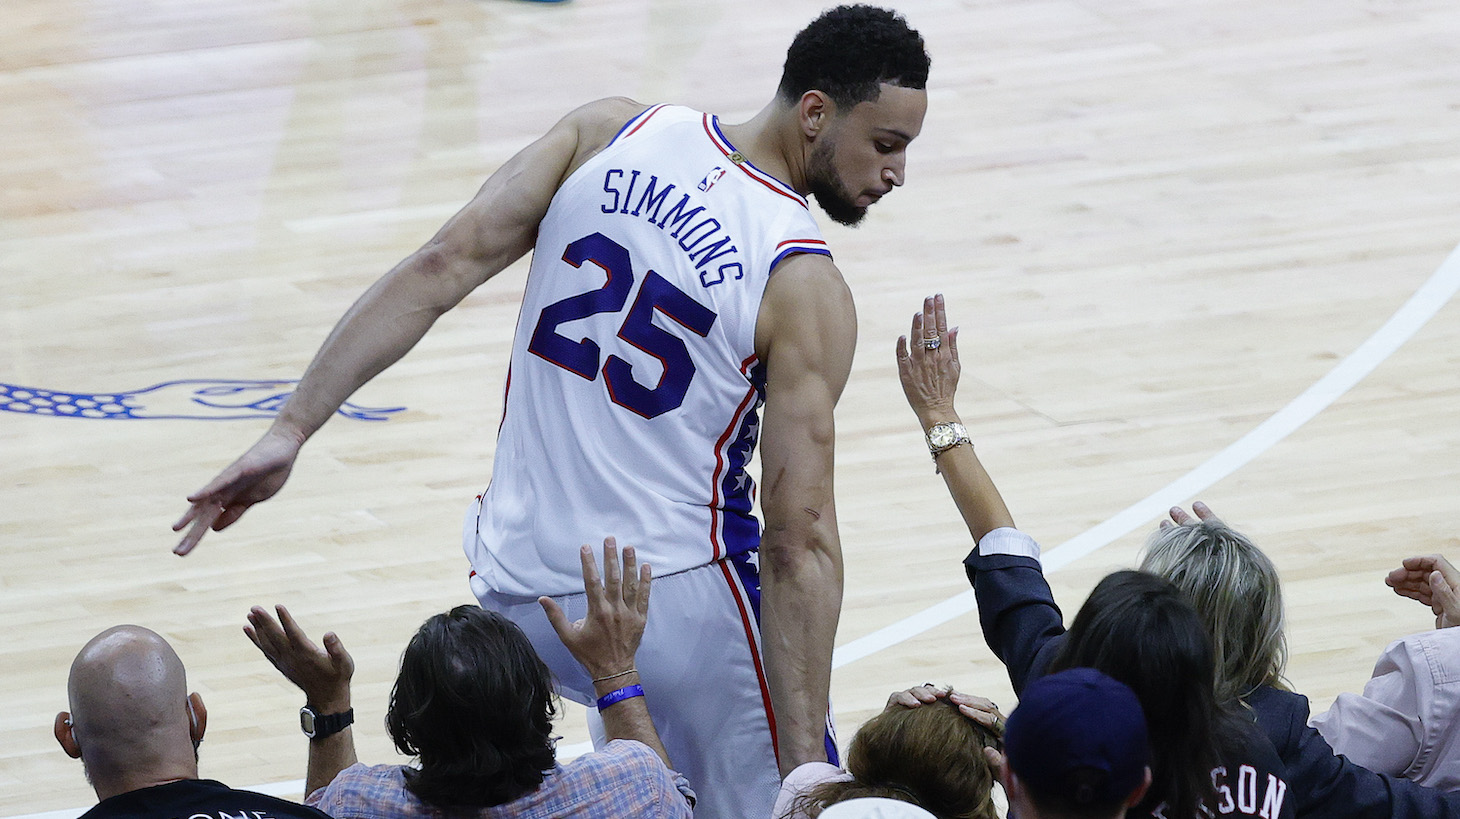 PHILADELPHIA, PENNSYLVANIA - JUNE 20: Ben Simmons #25 of the Philadelphia 76ers bumps into fans during the fourth quarter during Game Seven of the Eastern Conference Semifinals against the Atlanta Hawks at Wells Fargo Center on June 20, 2021 in Philadelphia, Pennsylvania. NOTE TO USER: User expressly acknowledges and agrees that, by downloading and or using this photograph, User is consenting to the terms and conditions of the Getty Images License Agreement. (Photo by Tim Nwachukwu/Getty Images)